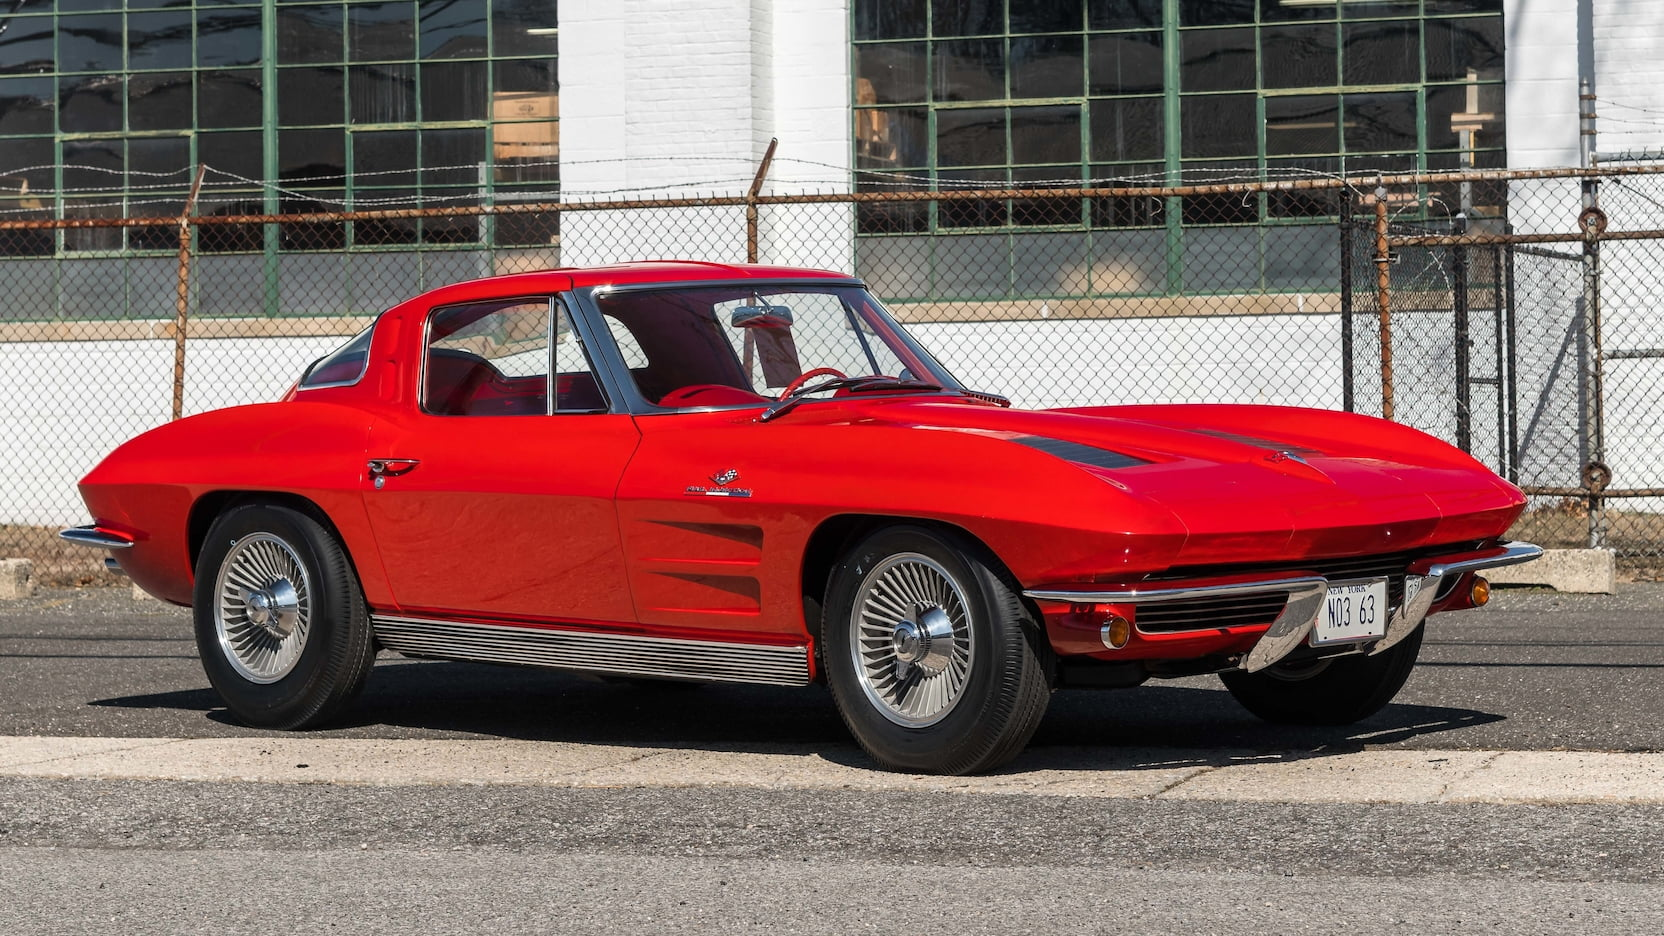 1963 Chevrolet Corvette Z06 (big tank) Coupe